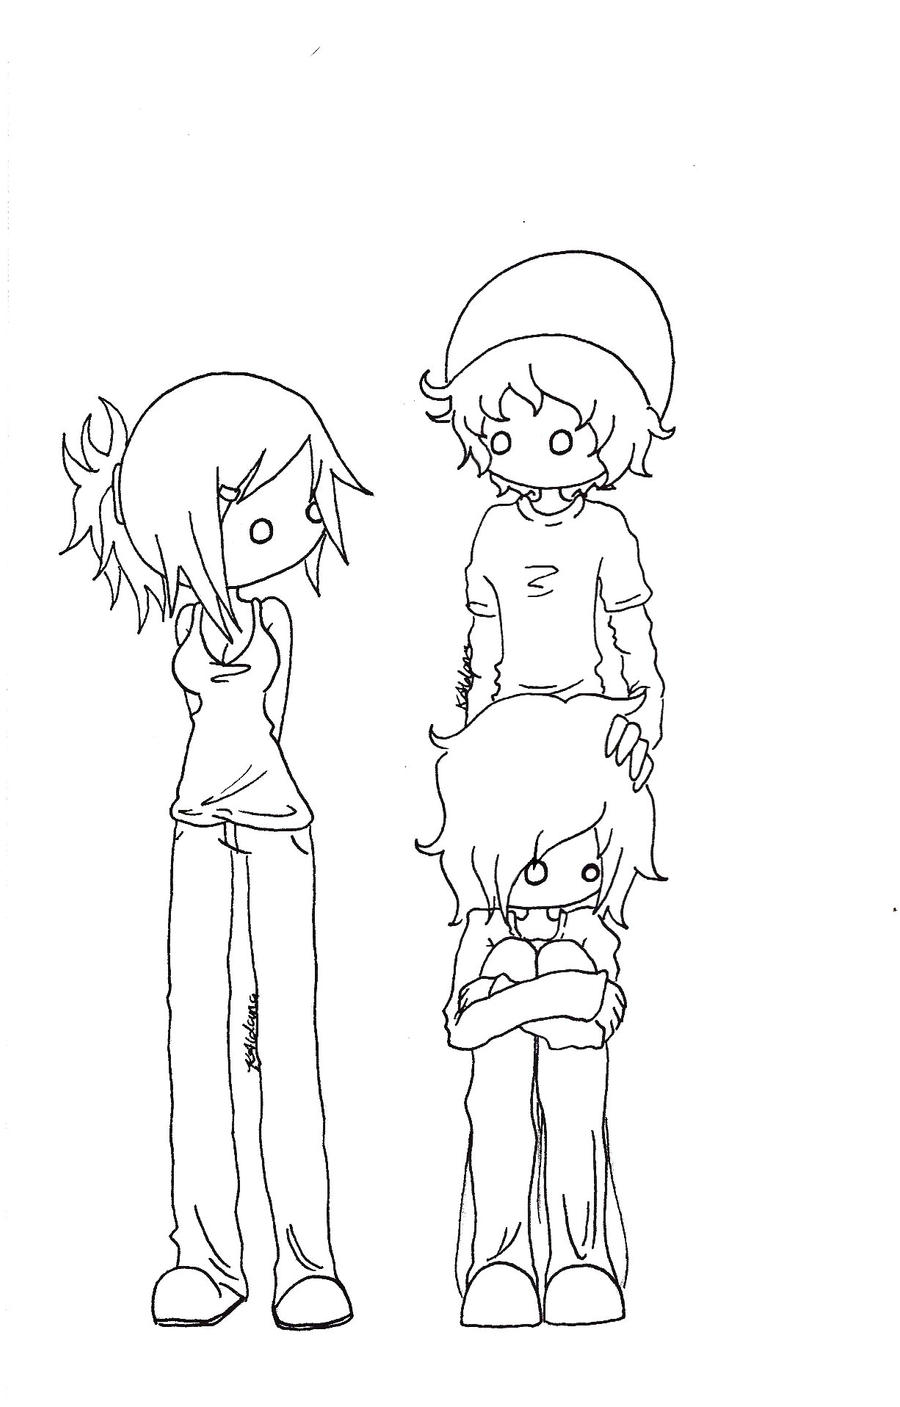 emo heart coloring pages | Emo Love Coloring Pages Coloring Pages